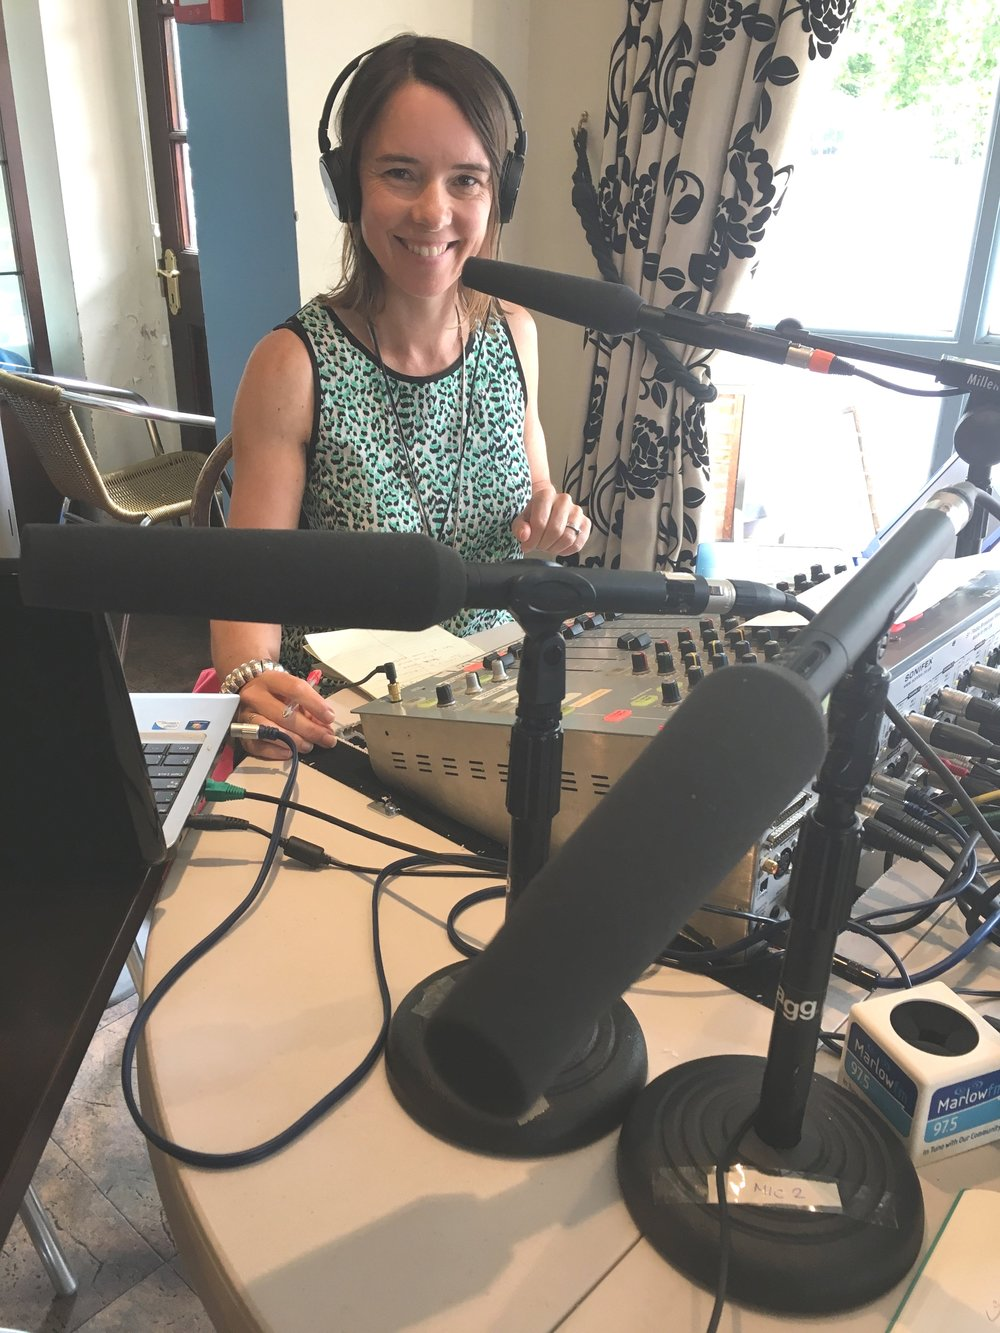 Carola Moon at MarlowFM's The Buzz - Radio Interview with Melissa Gale 3.jpg